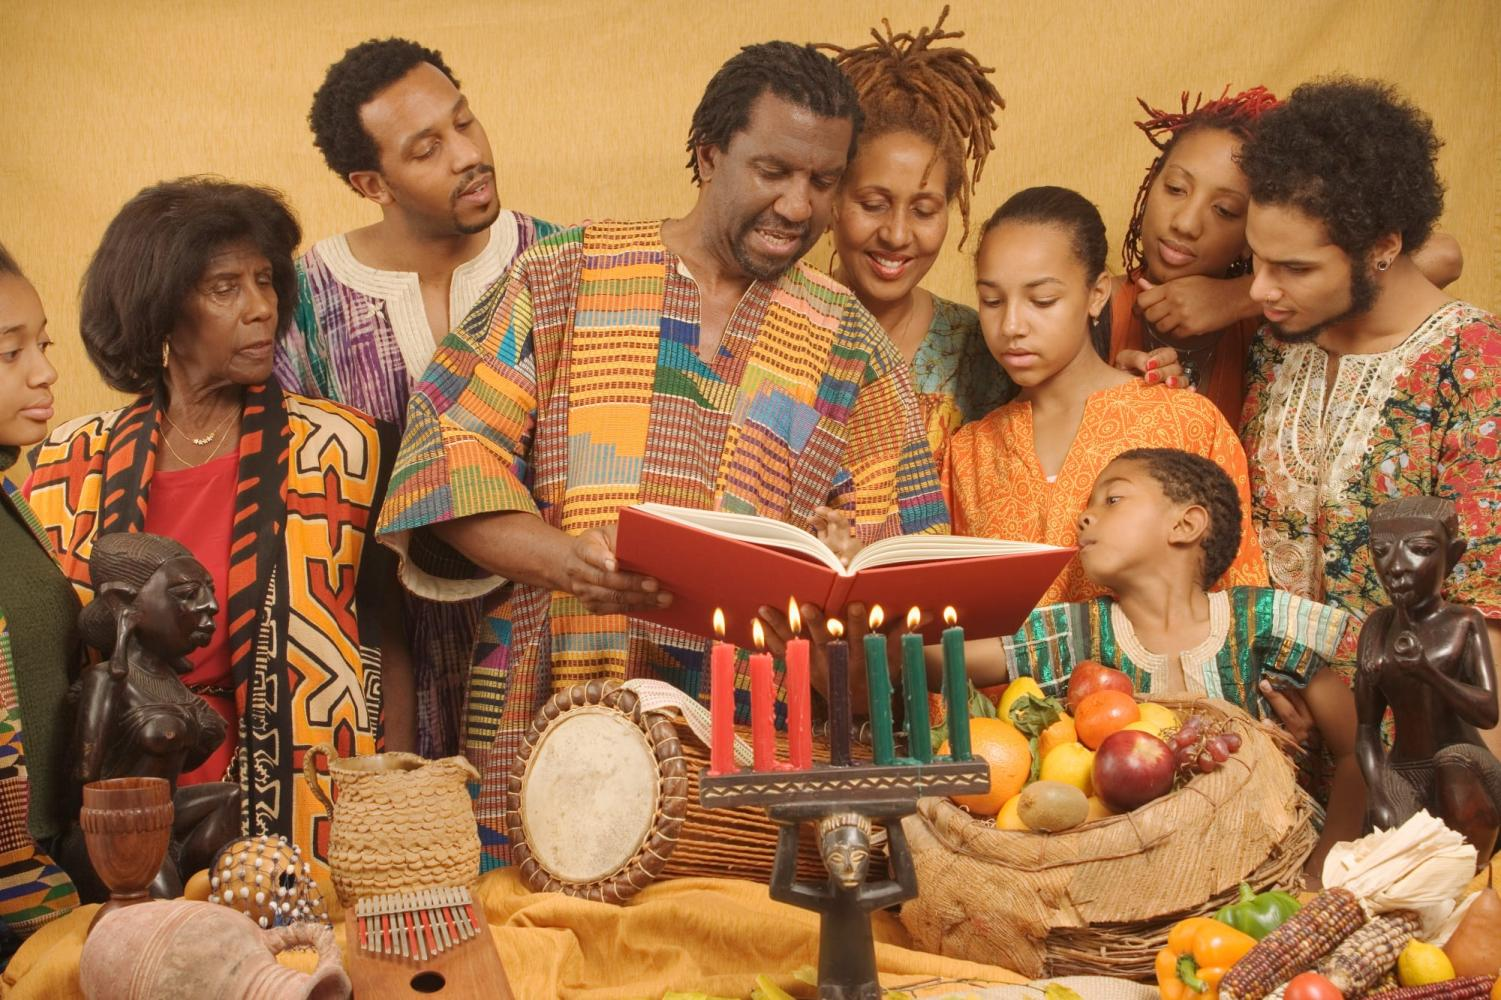 A family celebrates Kwanzaa by reading the scripture together.